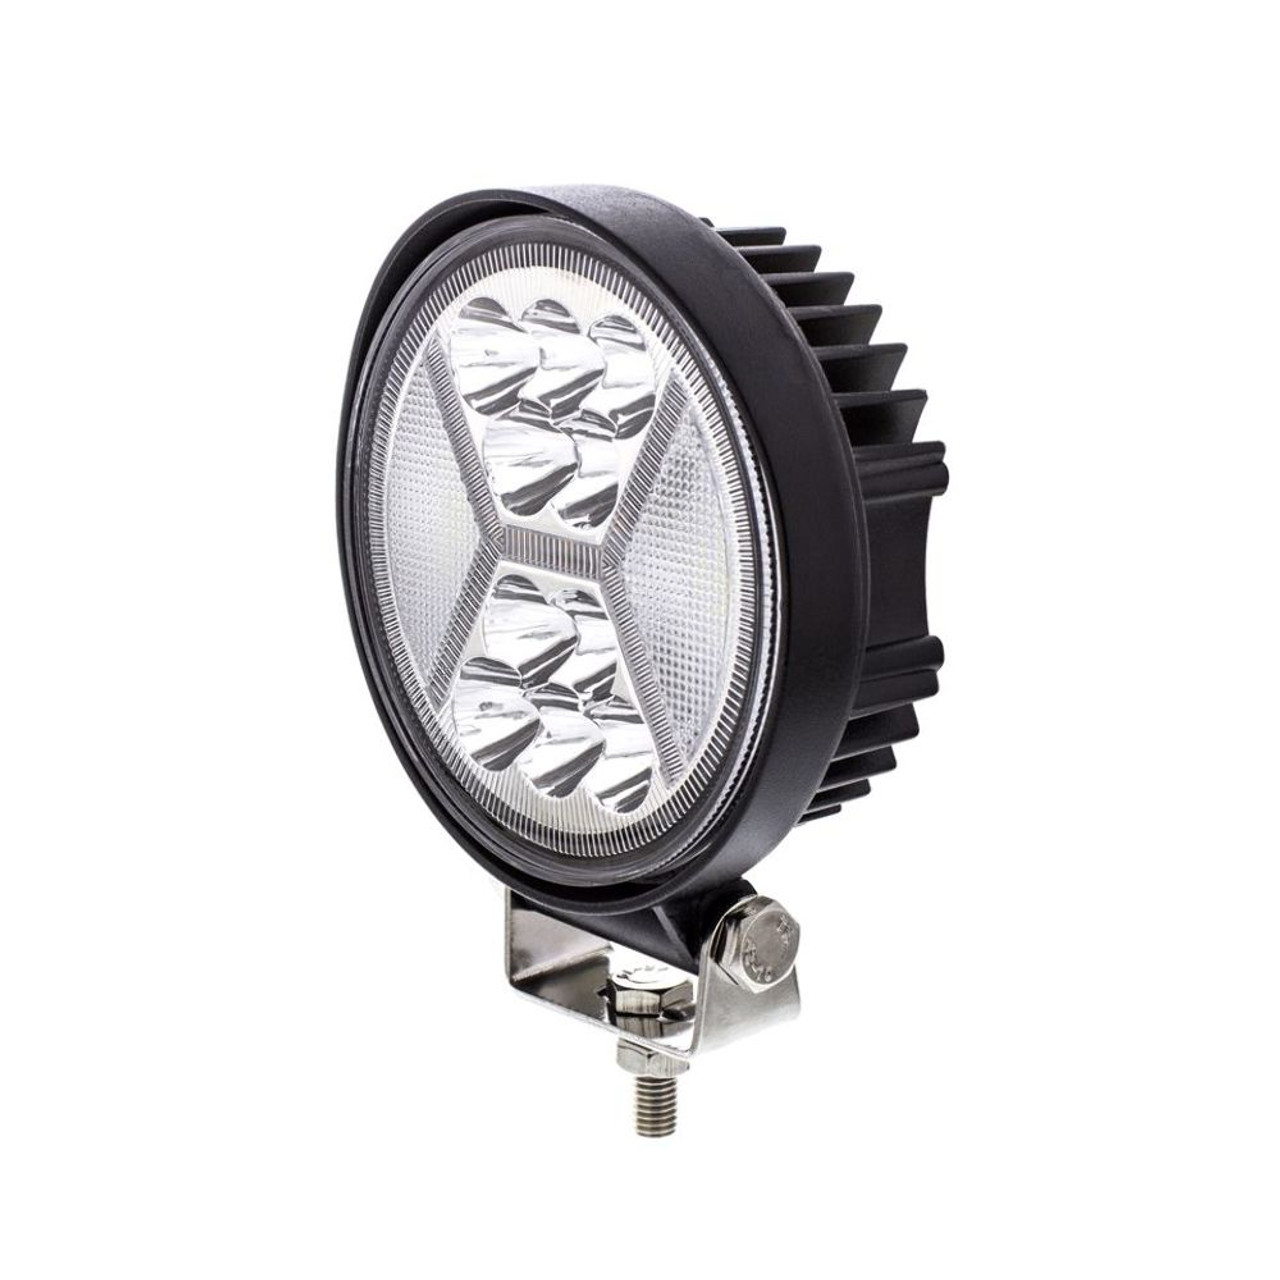 """4.5"""" 24 High Power Led Work Light With """"X"""" Amber Light Guide, 5200 Lumens, IP67"""